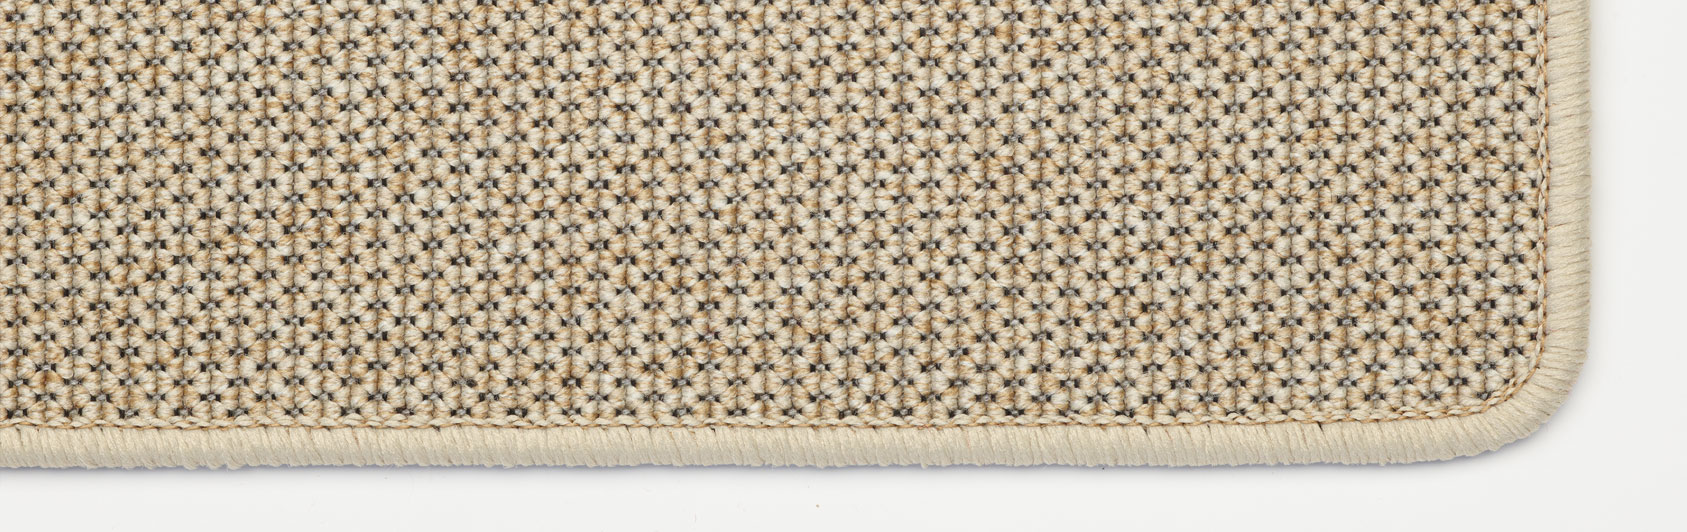 church carpet Eco color code 40081 color beige